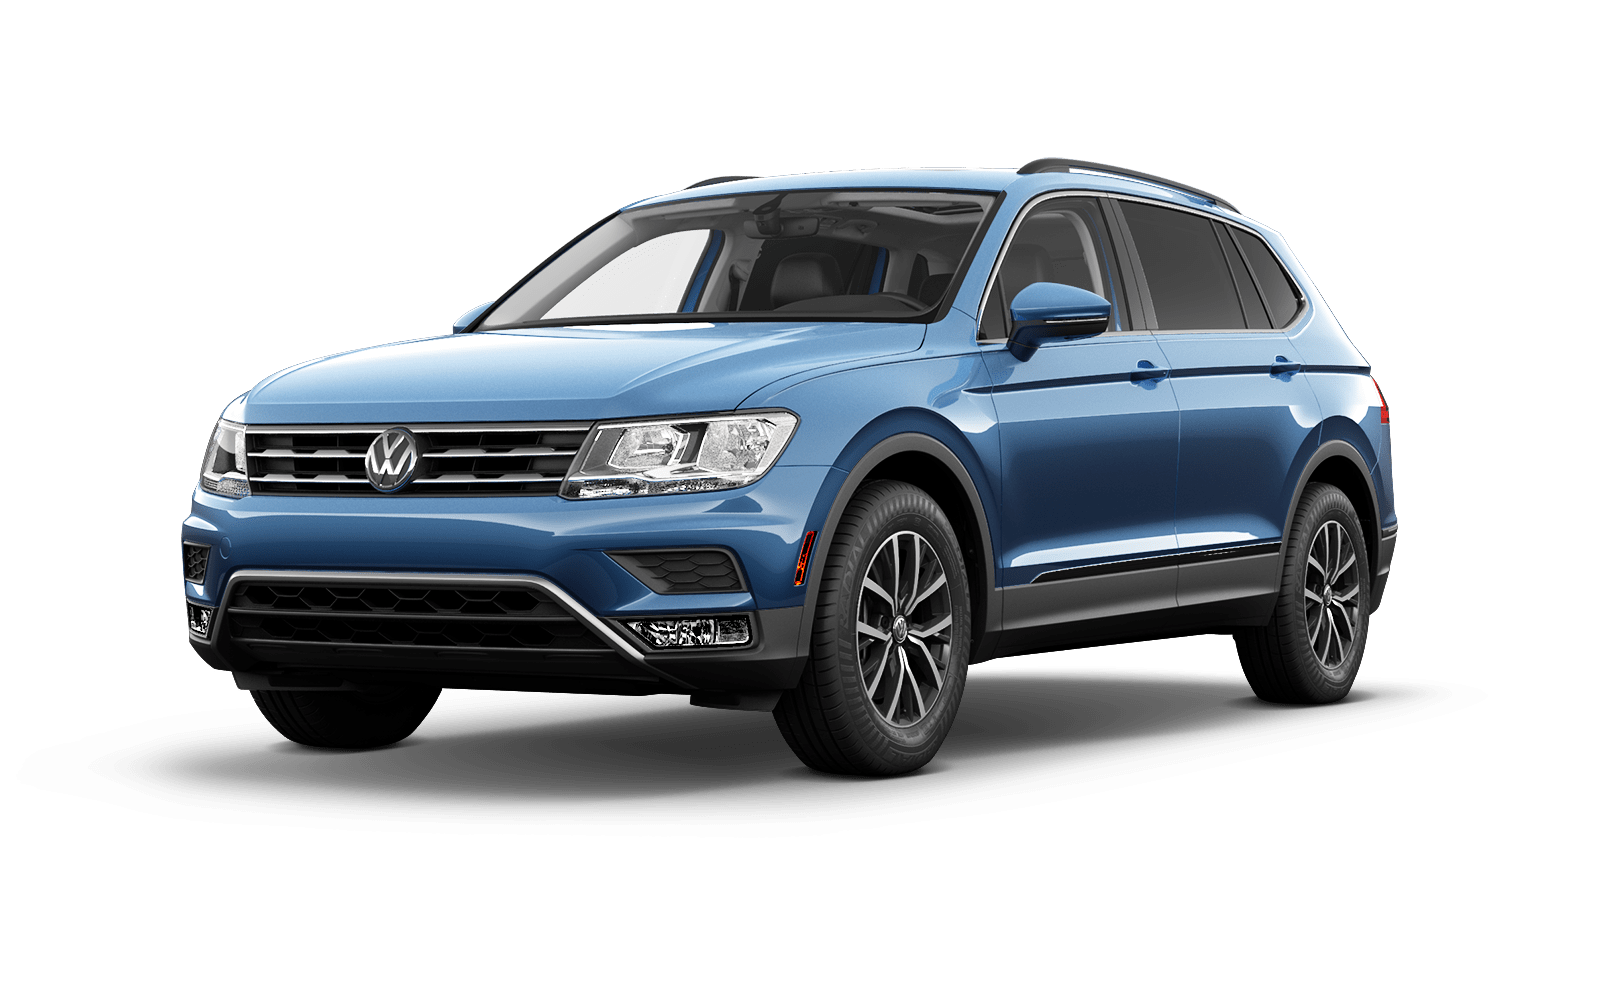 2018 volkswagen tiguan price specs interior photos auto haus vw. Black Bedroom Furniture Sets. Home Design Ideas